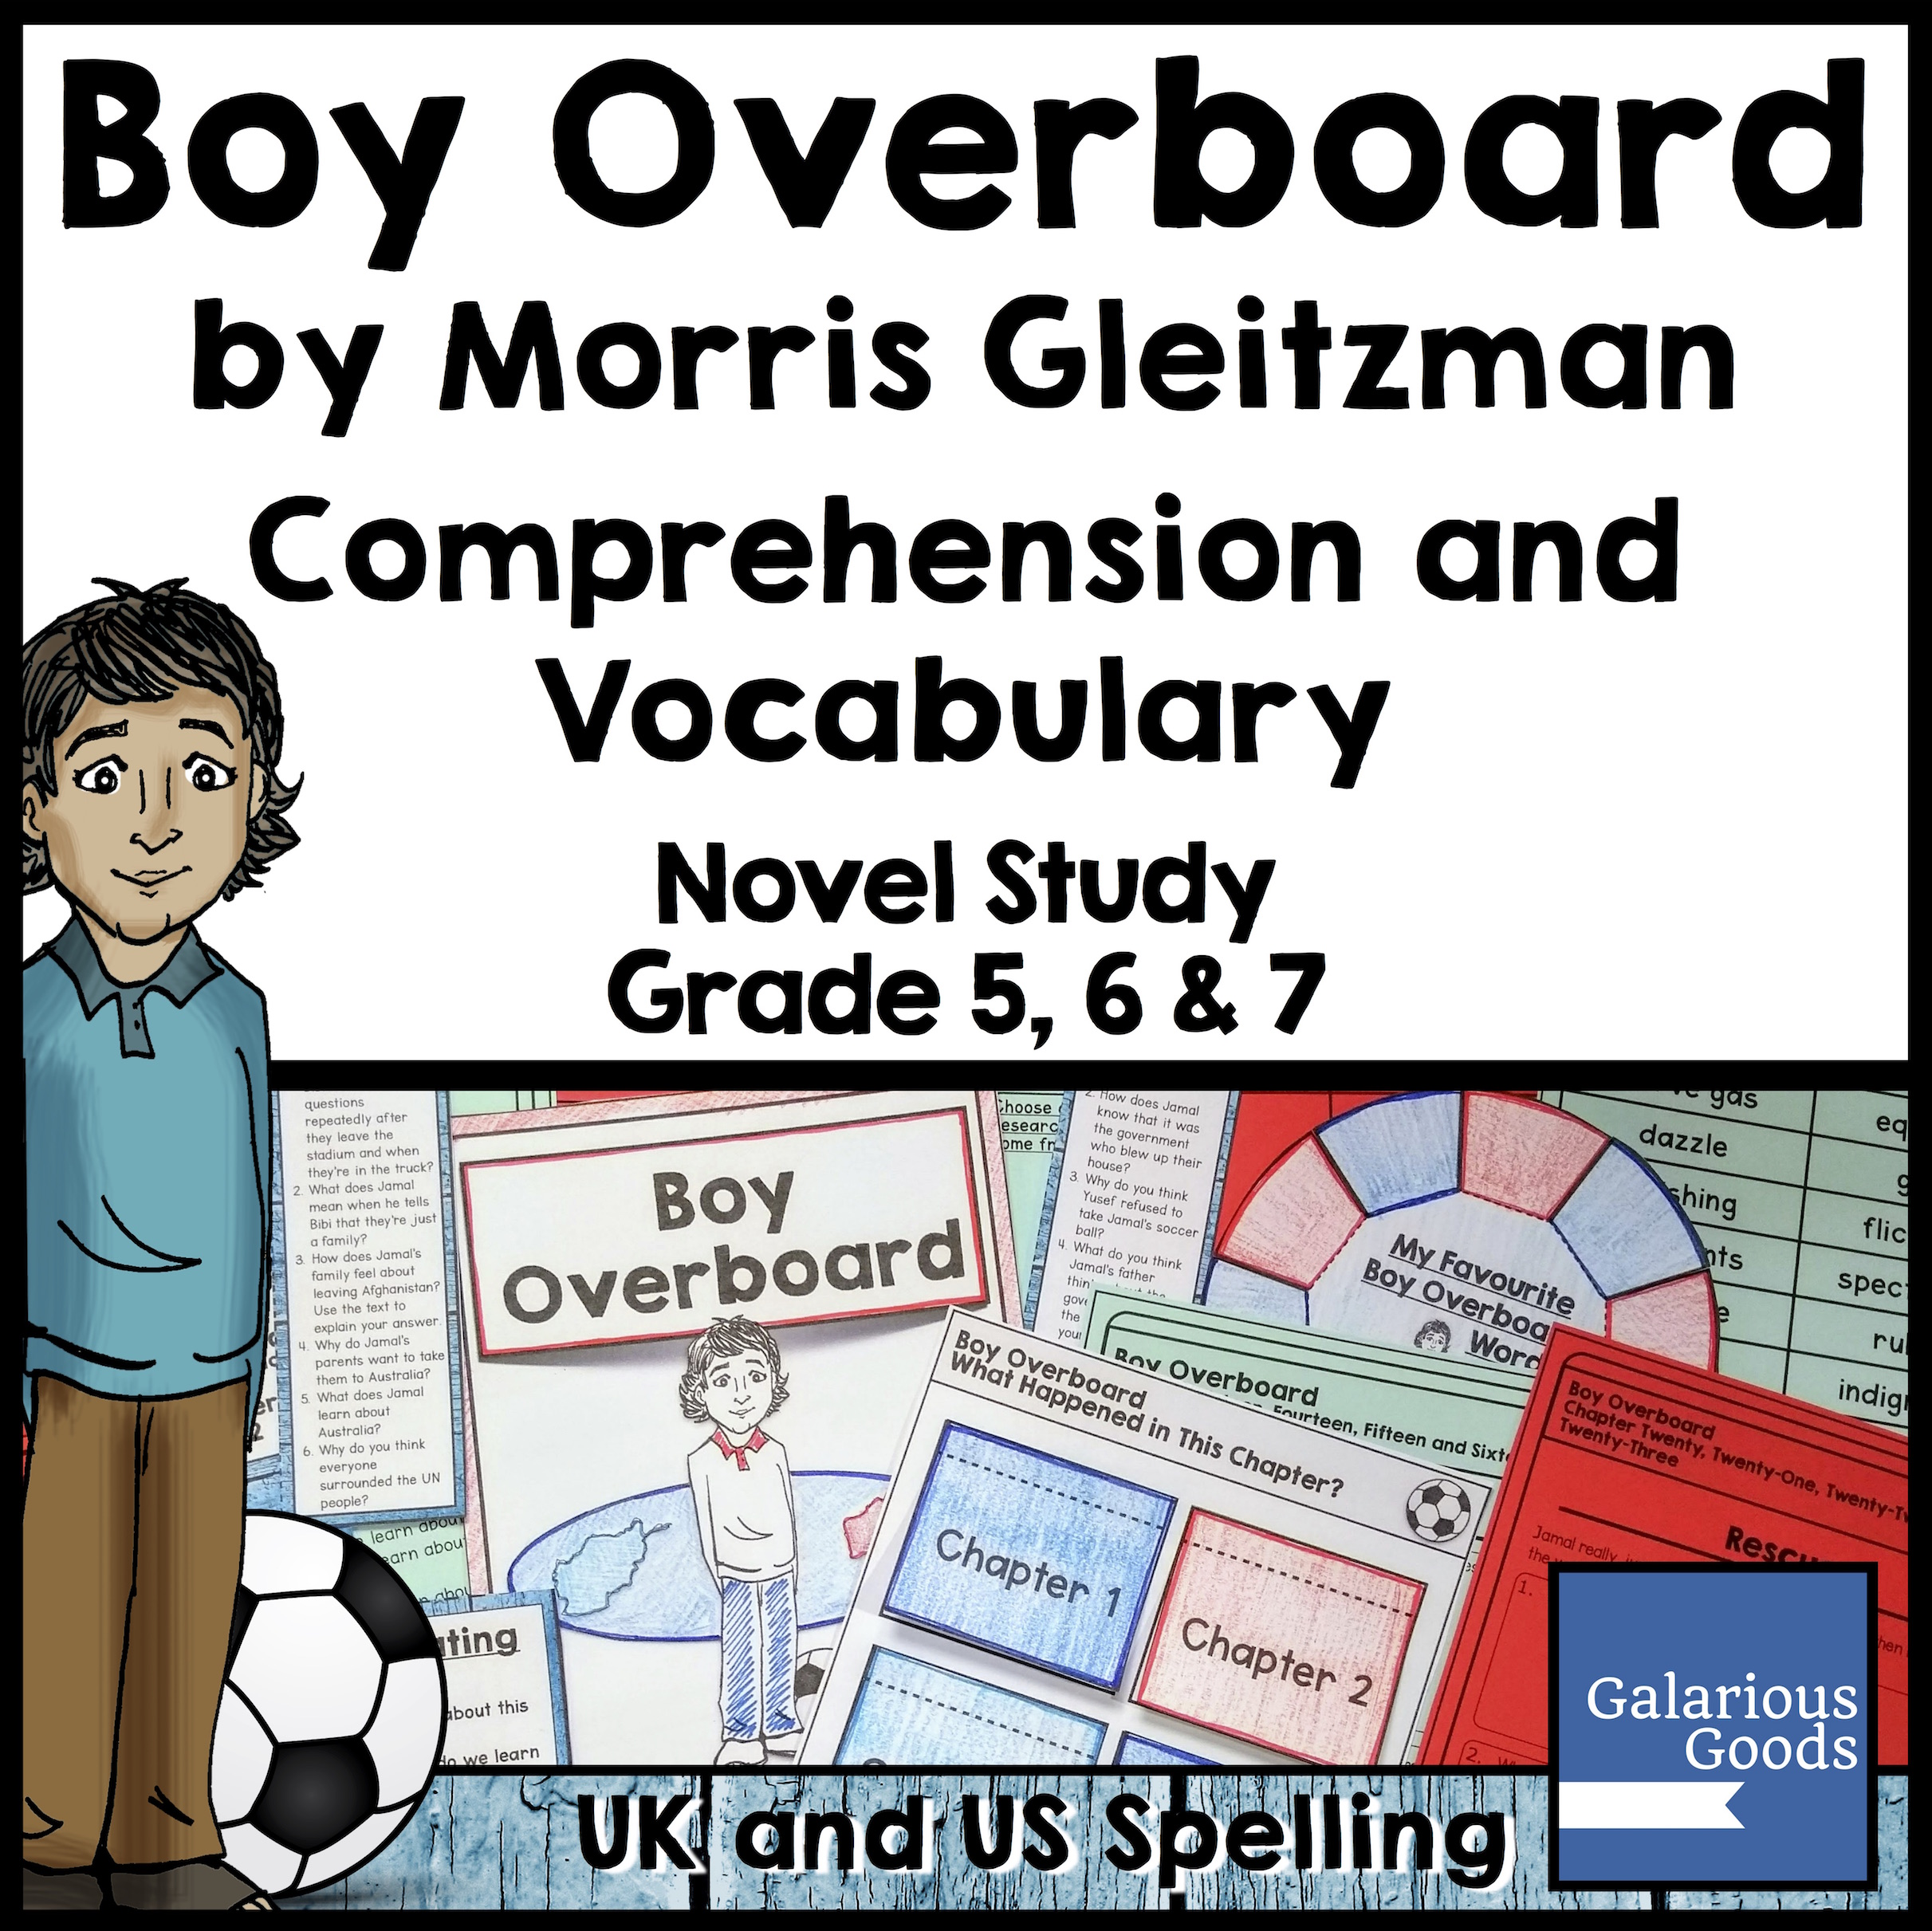 cover bo comp and vocab UPDATE.jpg